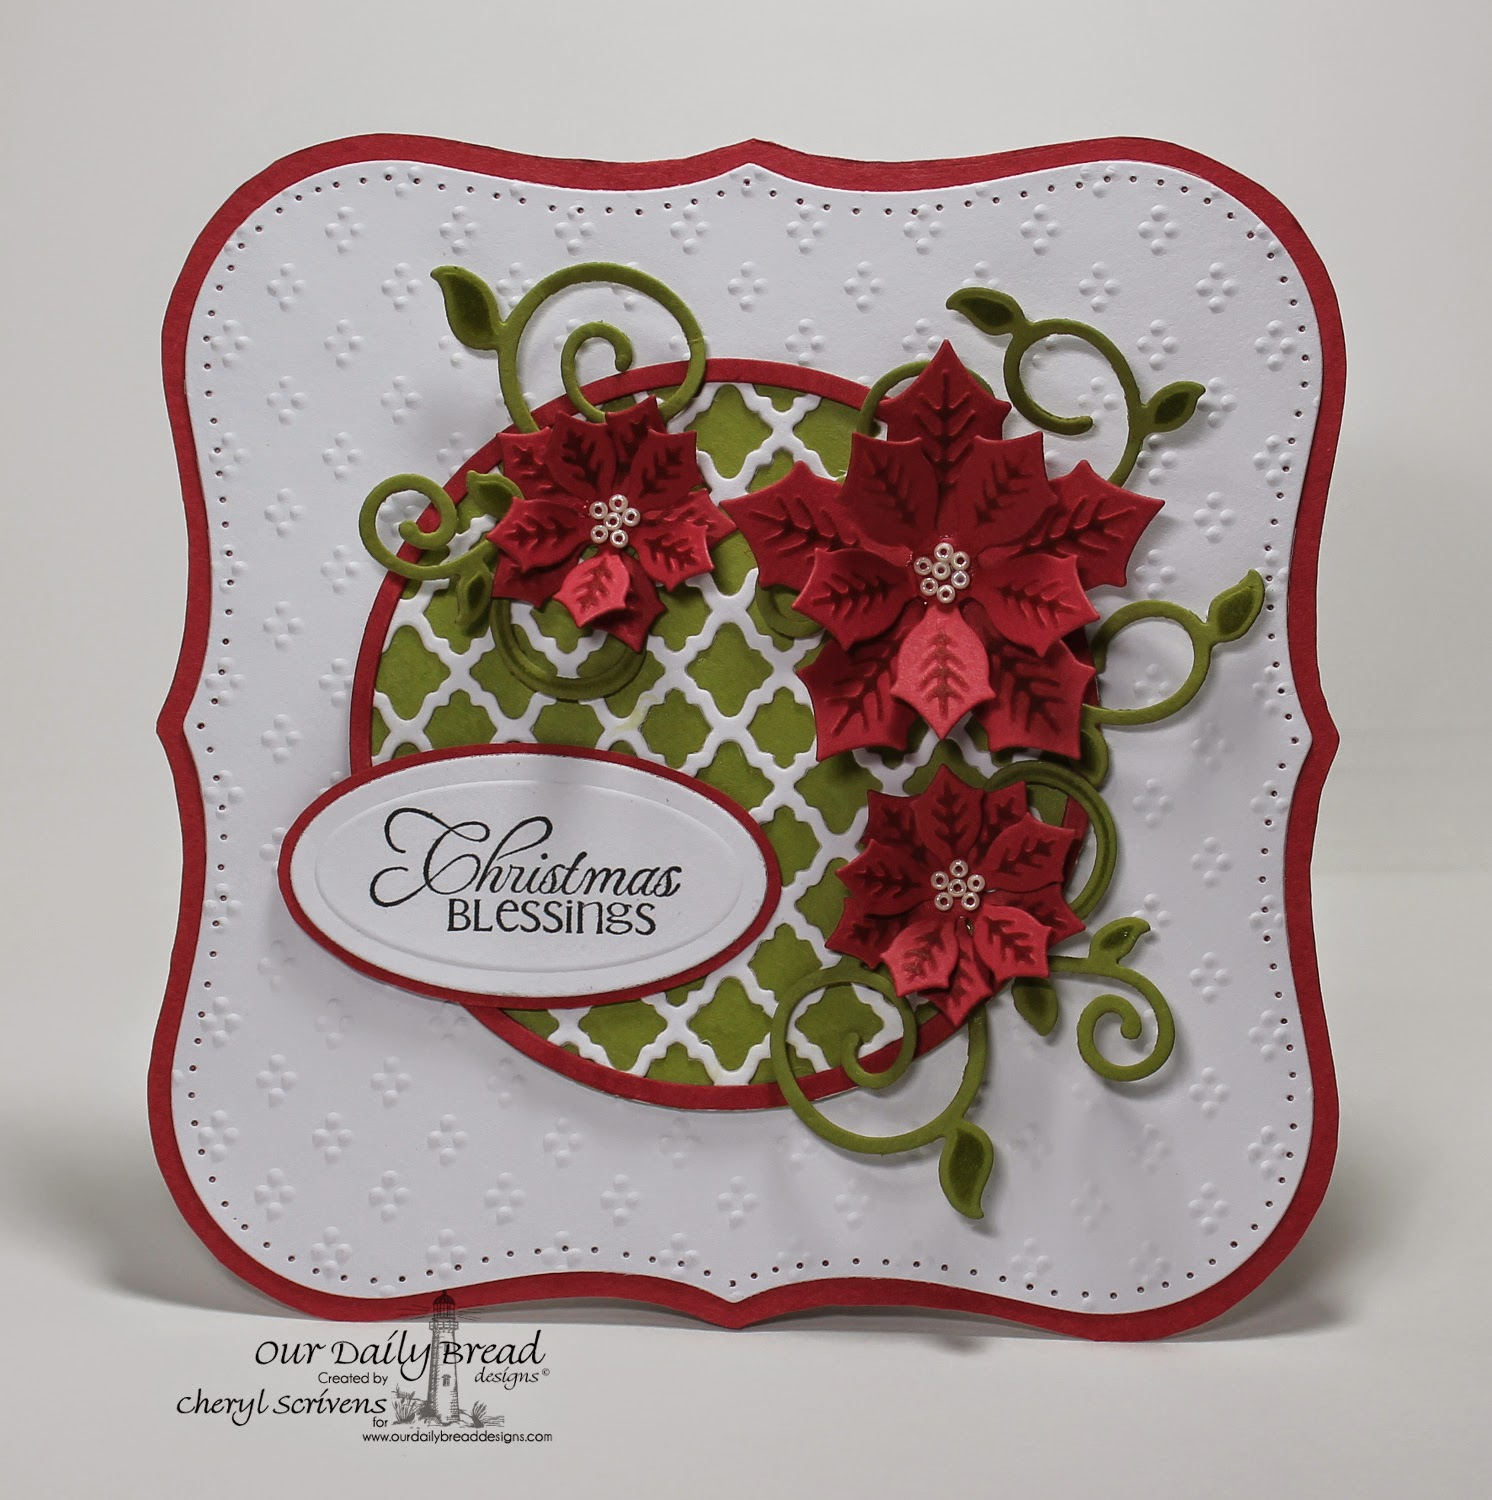 Our Daily Bread Designs, ODBDSLC219, Cardinal Ornament, Peaceful Poinsettia dies, Fancy Foliage dies, CherylQuilts, Designed by Cheryl Scrivens